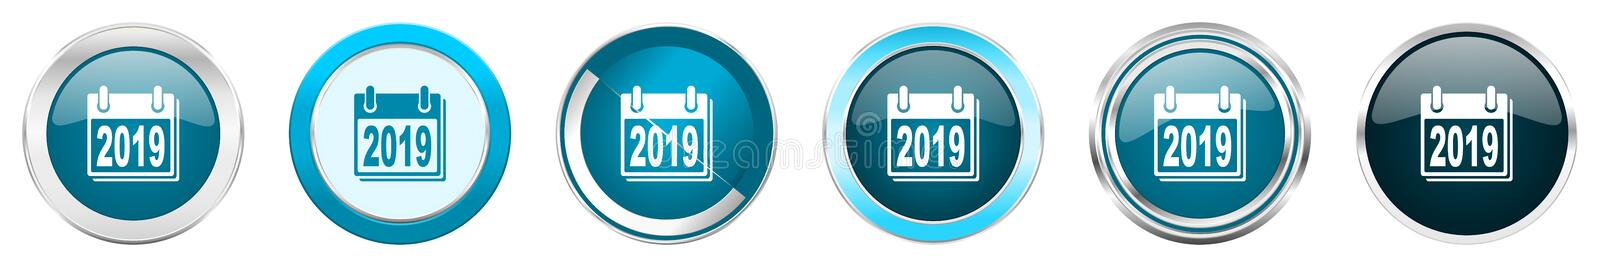 New year 2019 silver metallic chrome border icons in 6 options, set of web blue round buttons isolated on white background vector illustration